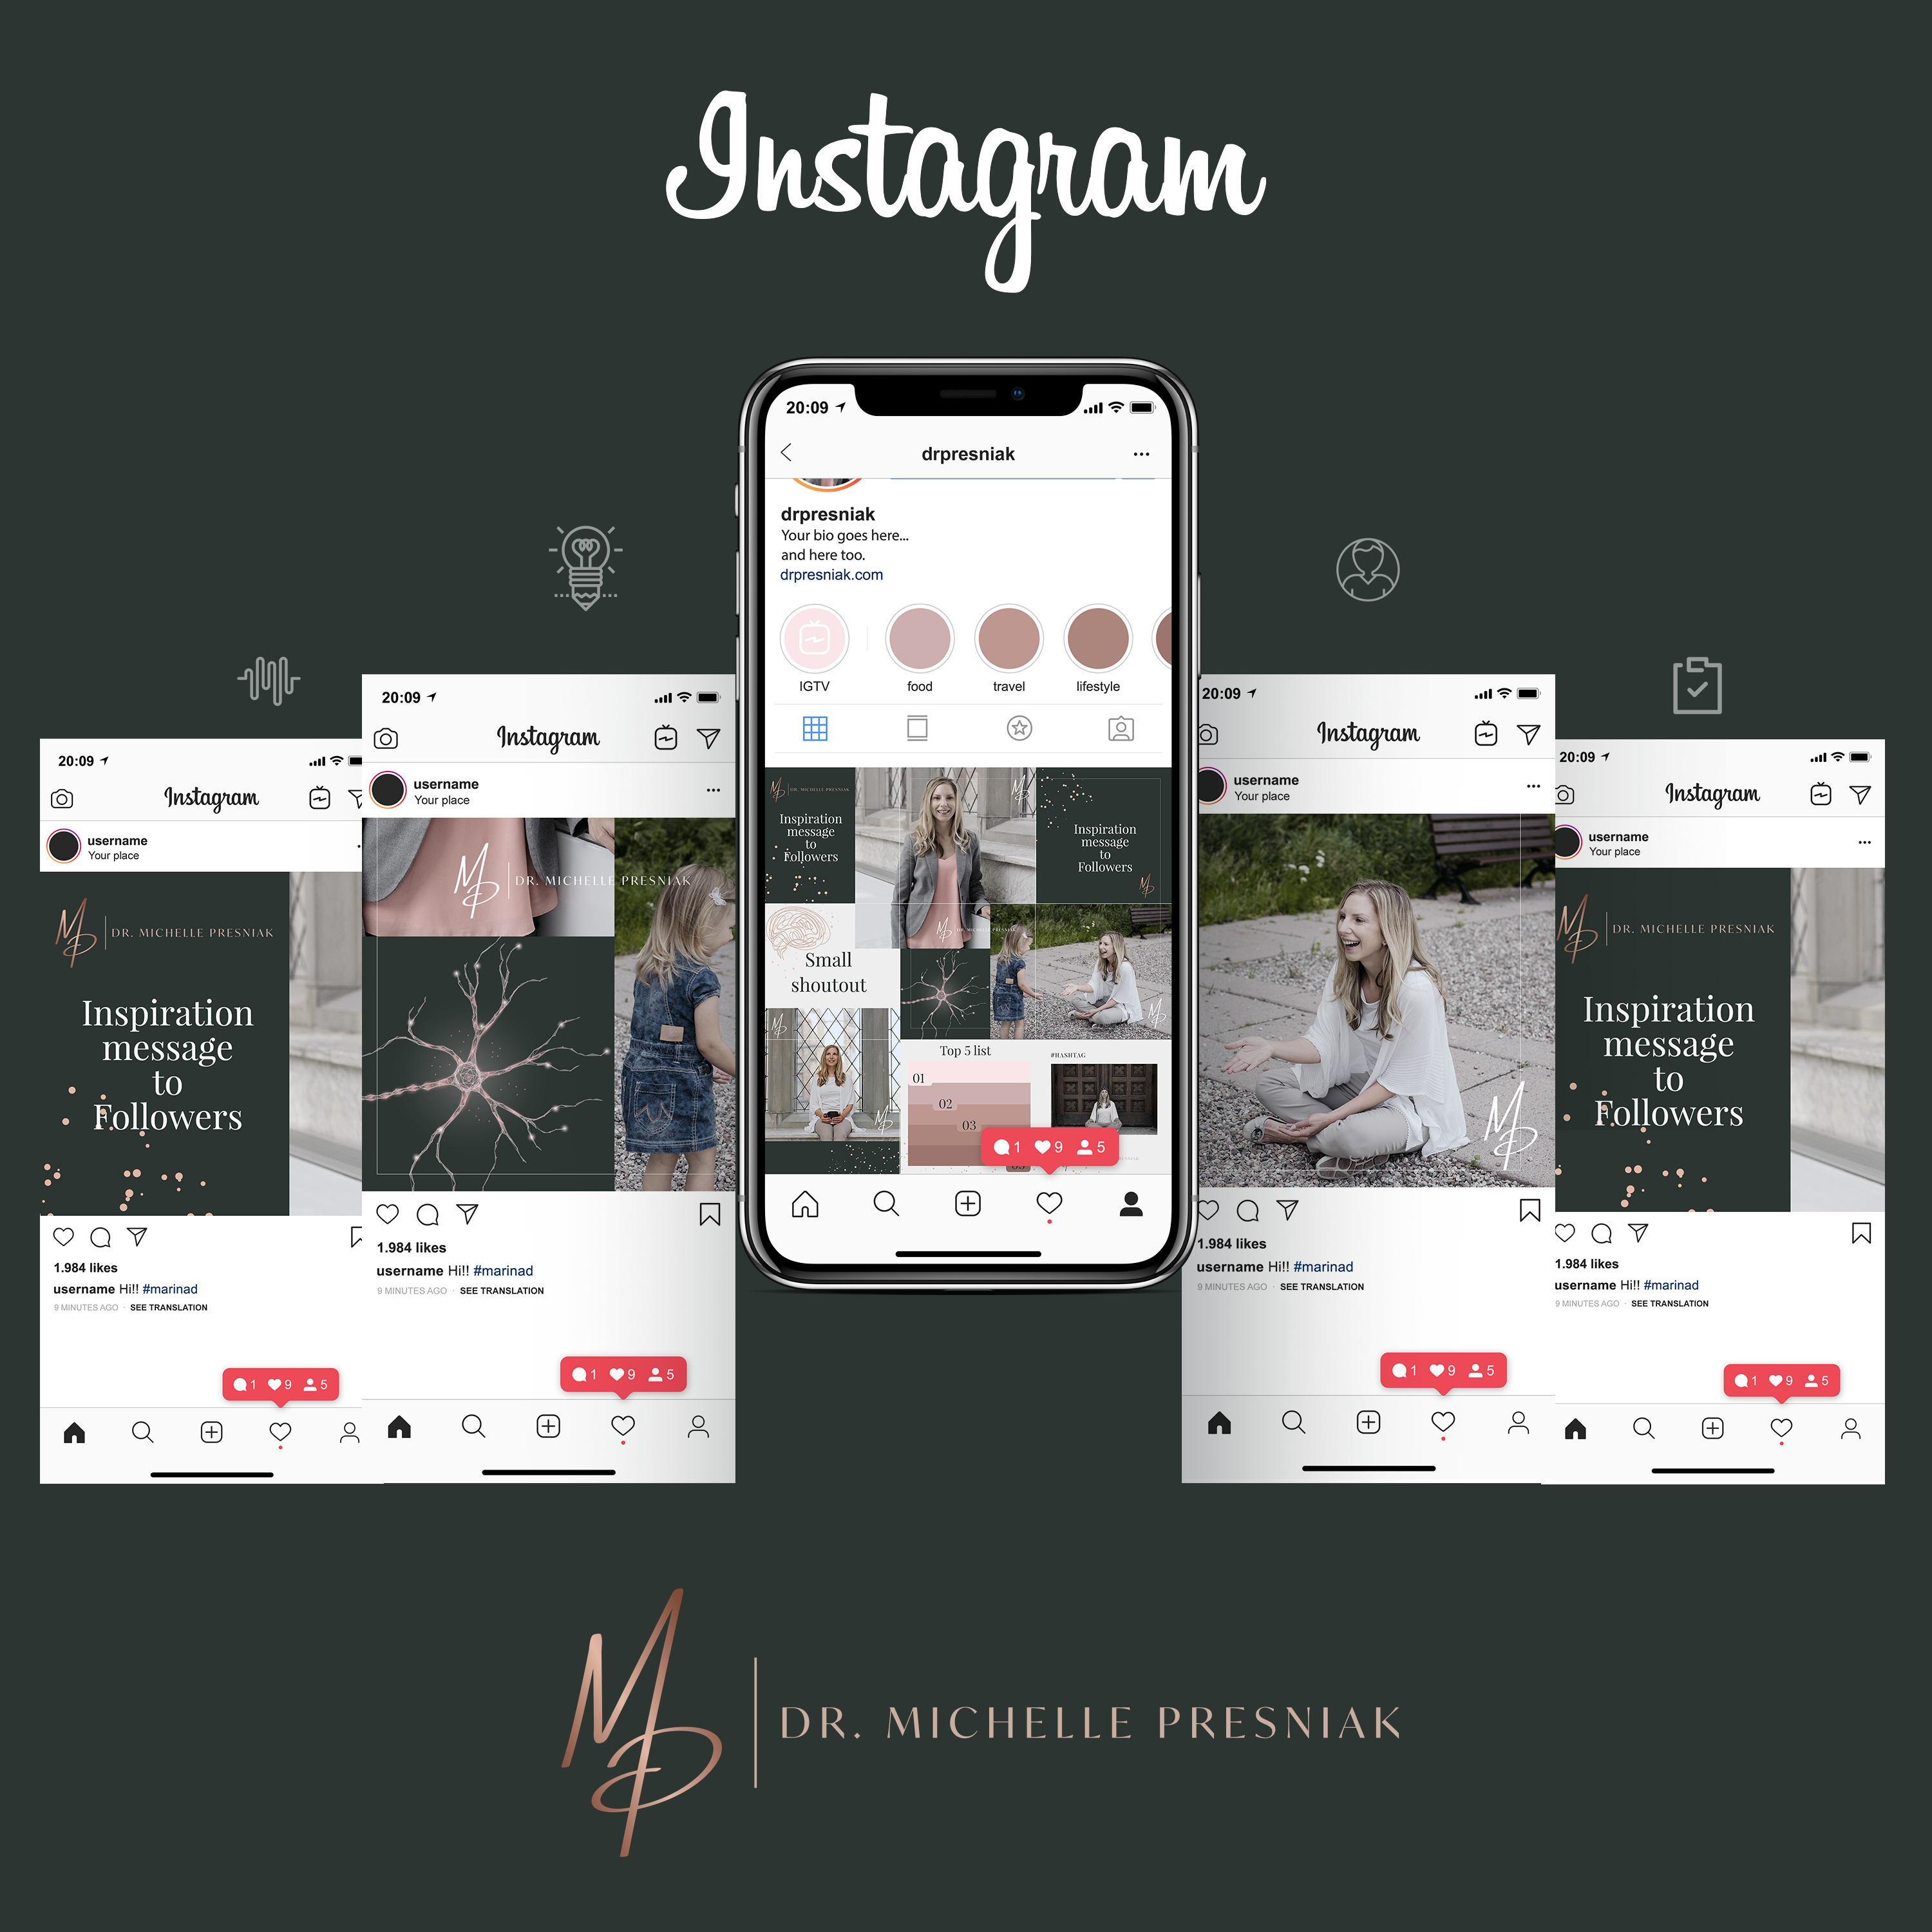 Instagram Themes/Backgrounds for Business Consultant